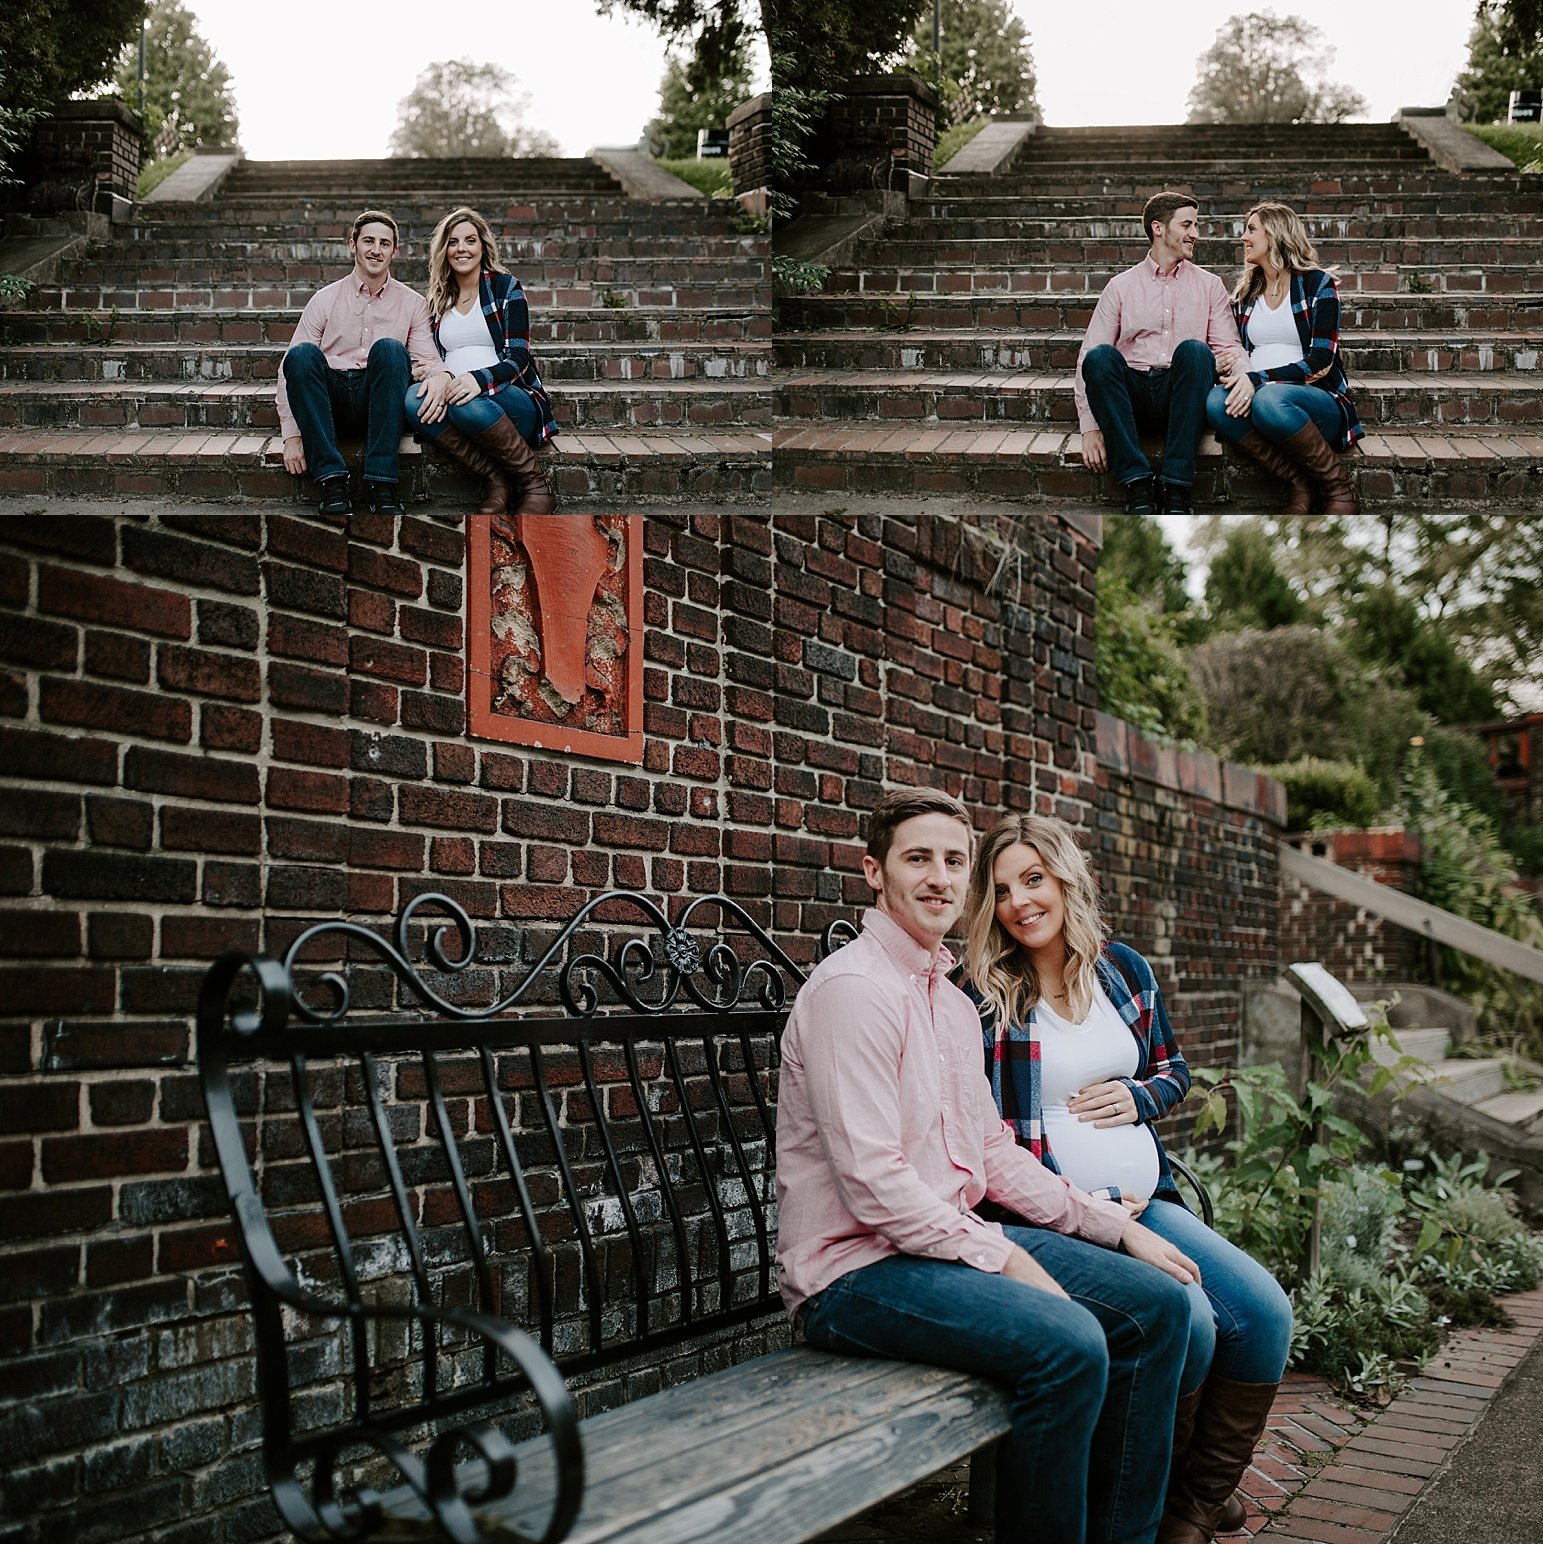 ashley_sara_photography-mellon-park-maternity-shoot-pittsburgh_photographer-maternity_photographer_pennsylvania10.jpg